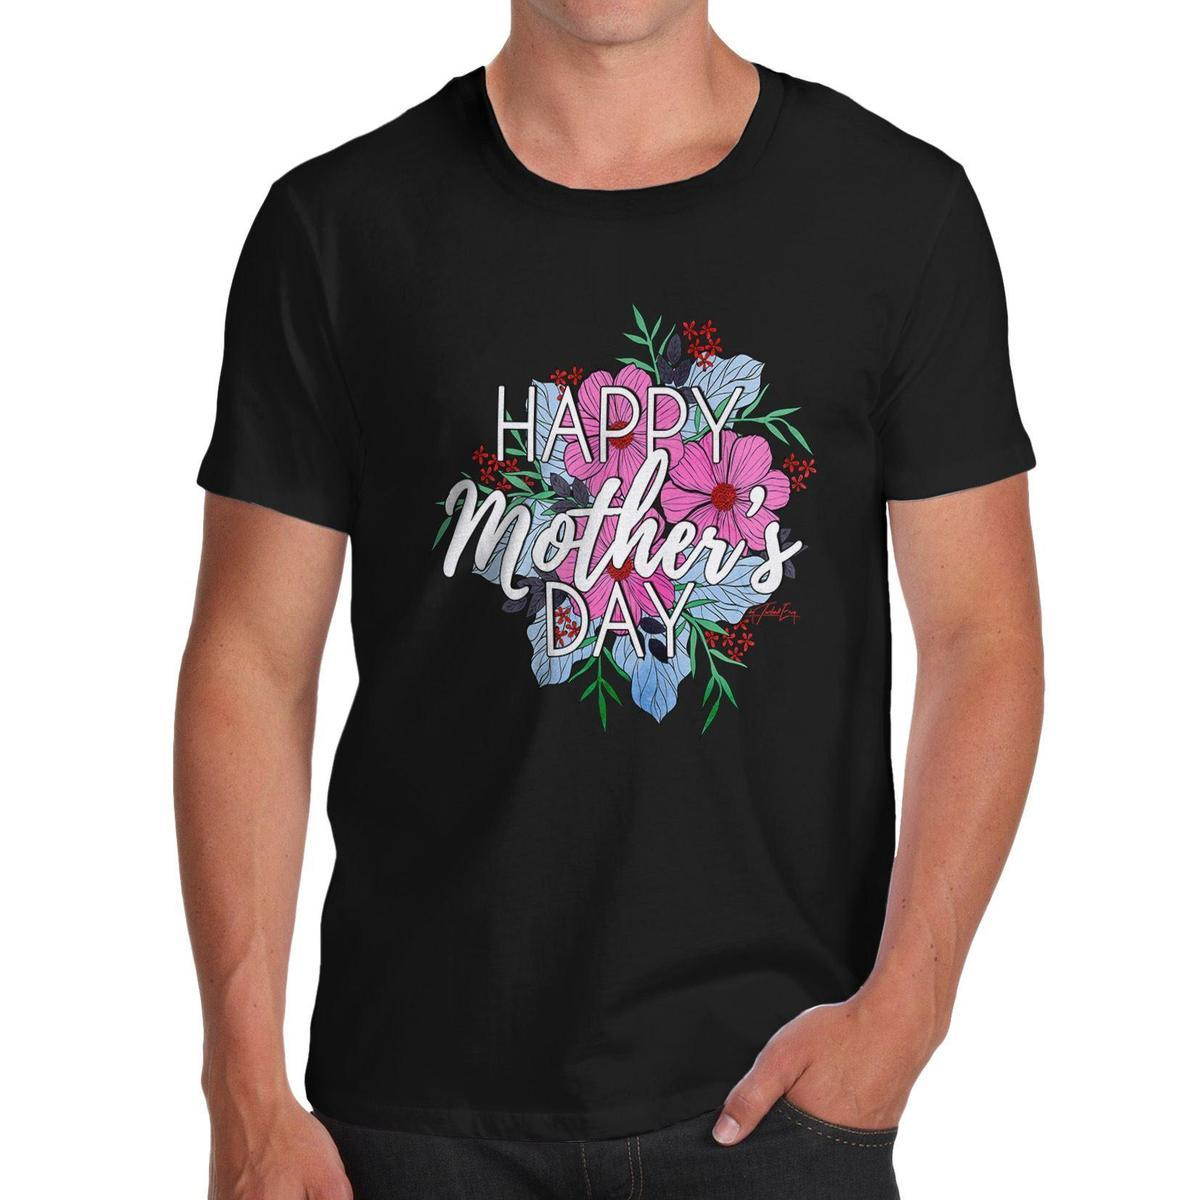 T-shirt da uomo Twisted Envy Happy Mother's Day